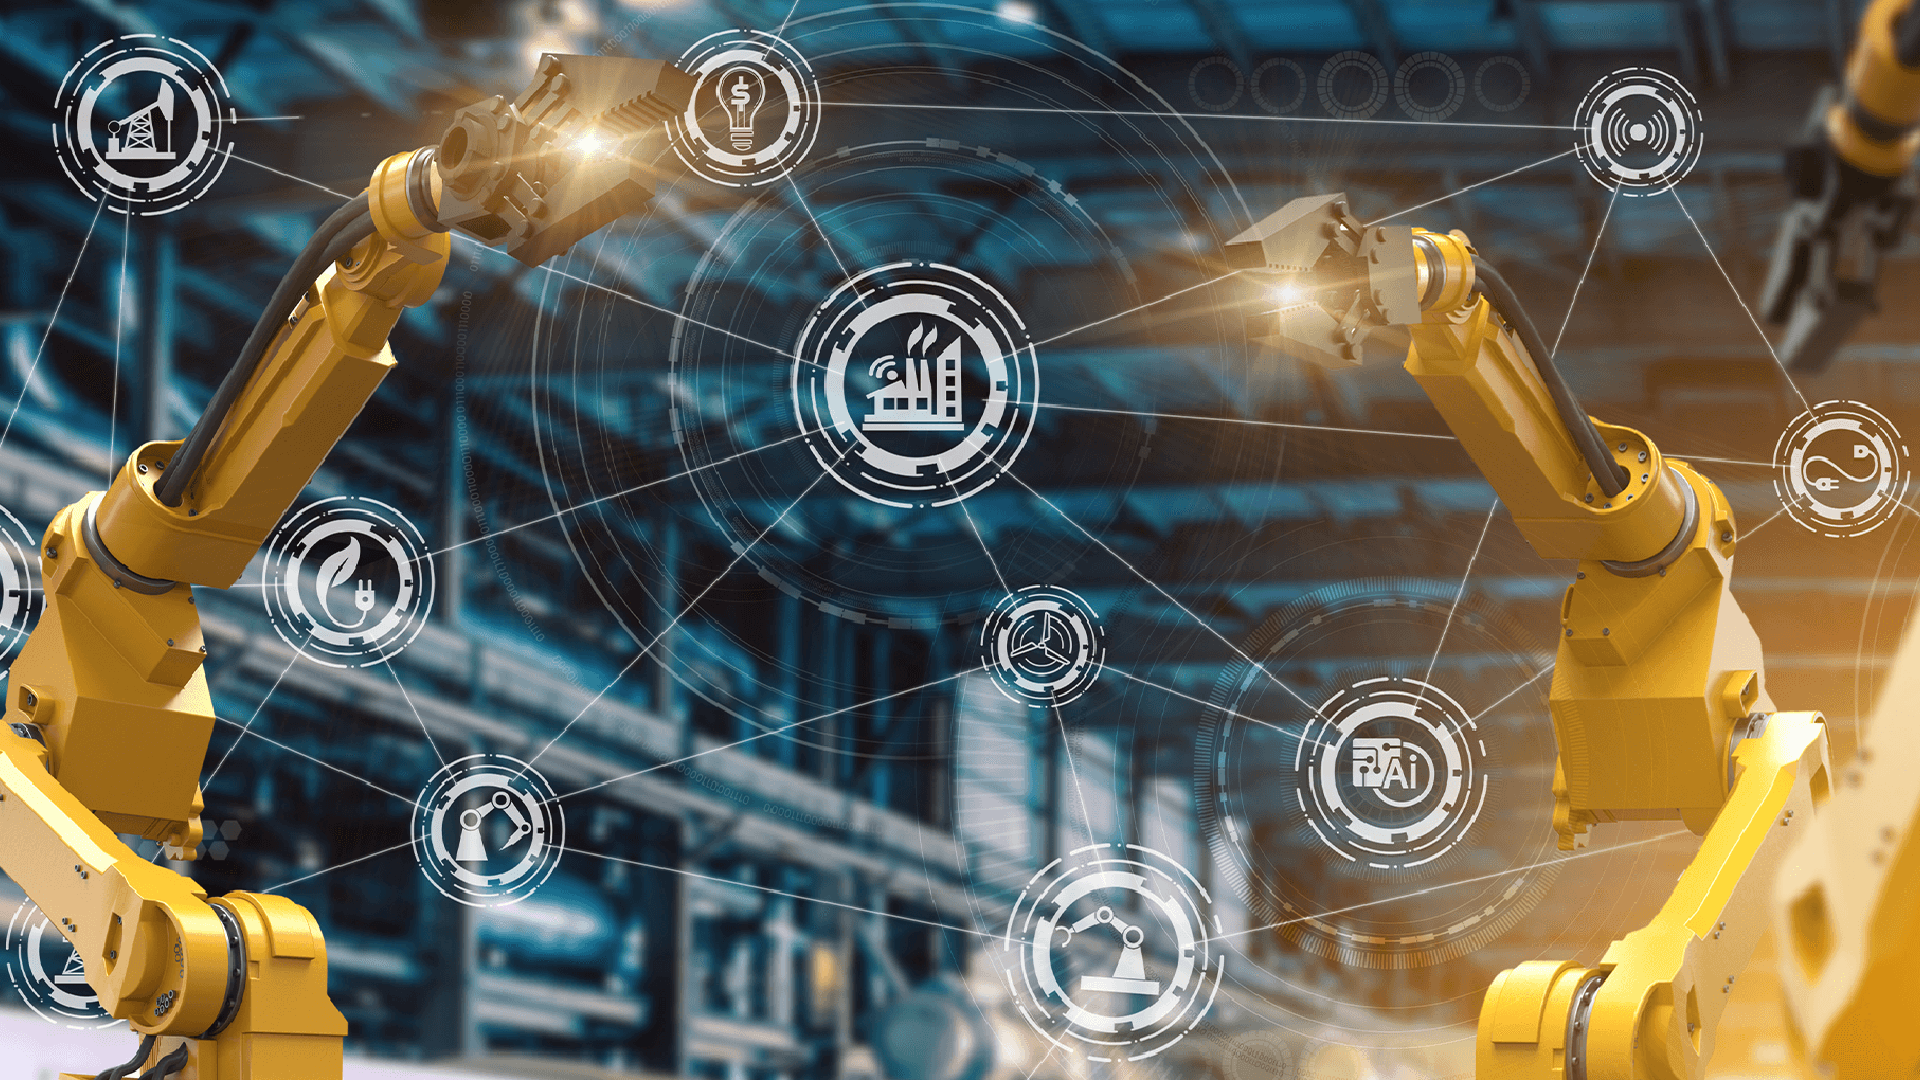 Impact of Industry 4.0 on Product Lifecycle Management